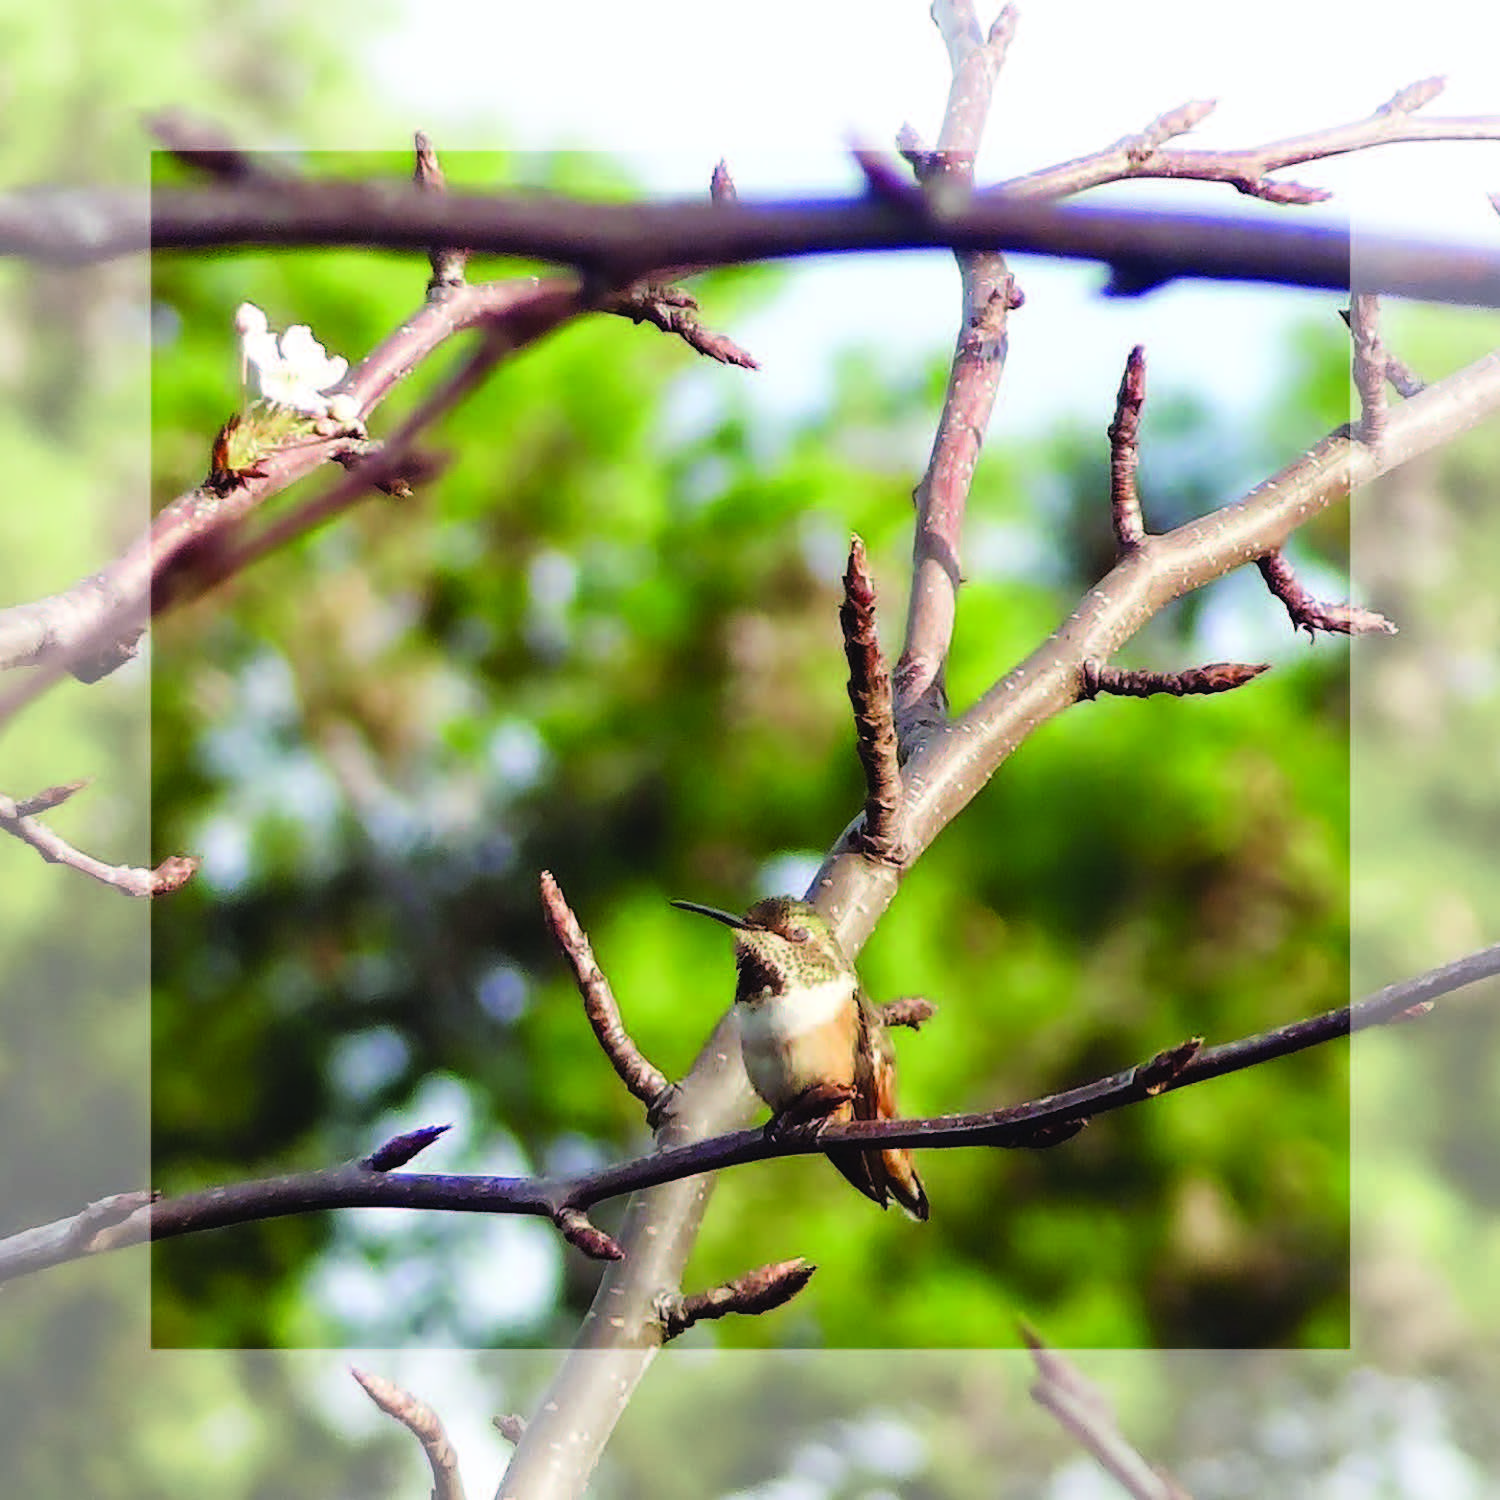 Chelsea Hipley   - I saw this little hummingbird in a tree this weekend and then started to  imagine  what it would be like to fly. Feeling weightless and free. Fluttering around from limb to limb then resting in the morning sun. Simply living in each moment. (photo taken in Laguna Niguel, CA)